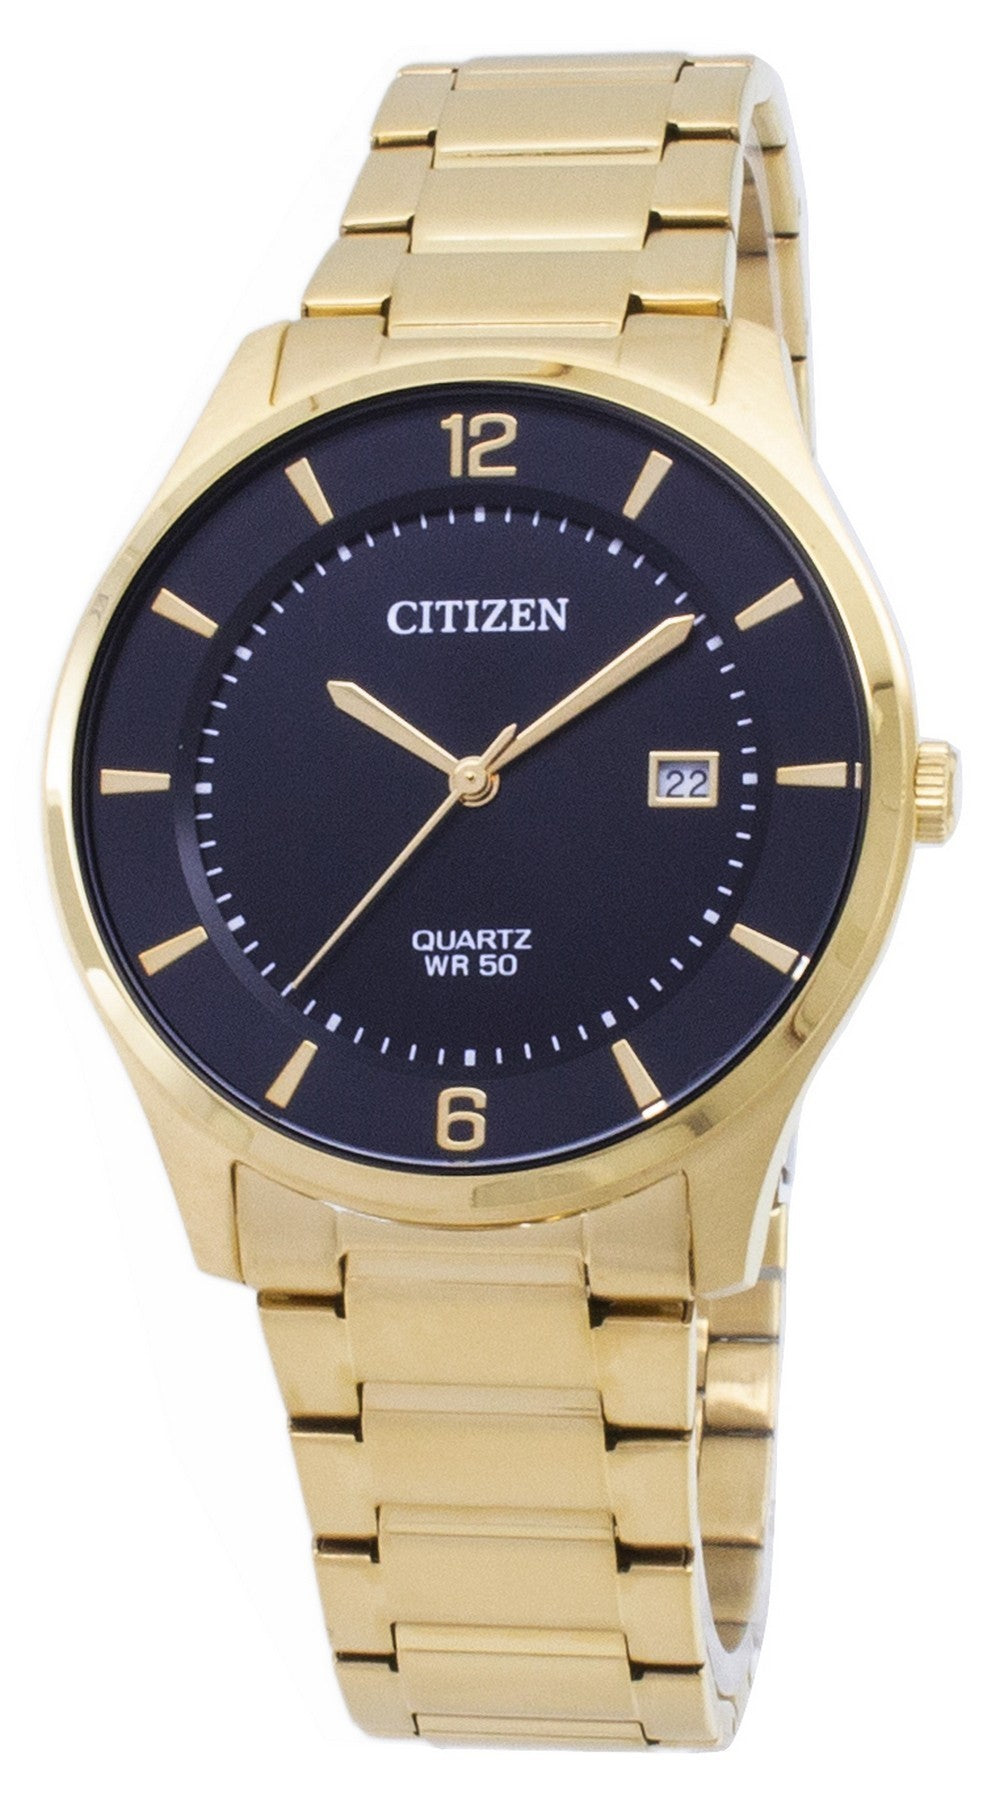 Citizen Quartz Bd0043-83e Analog Men's Watch